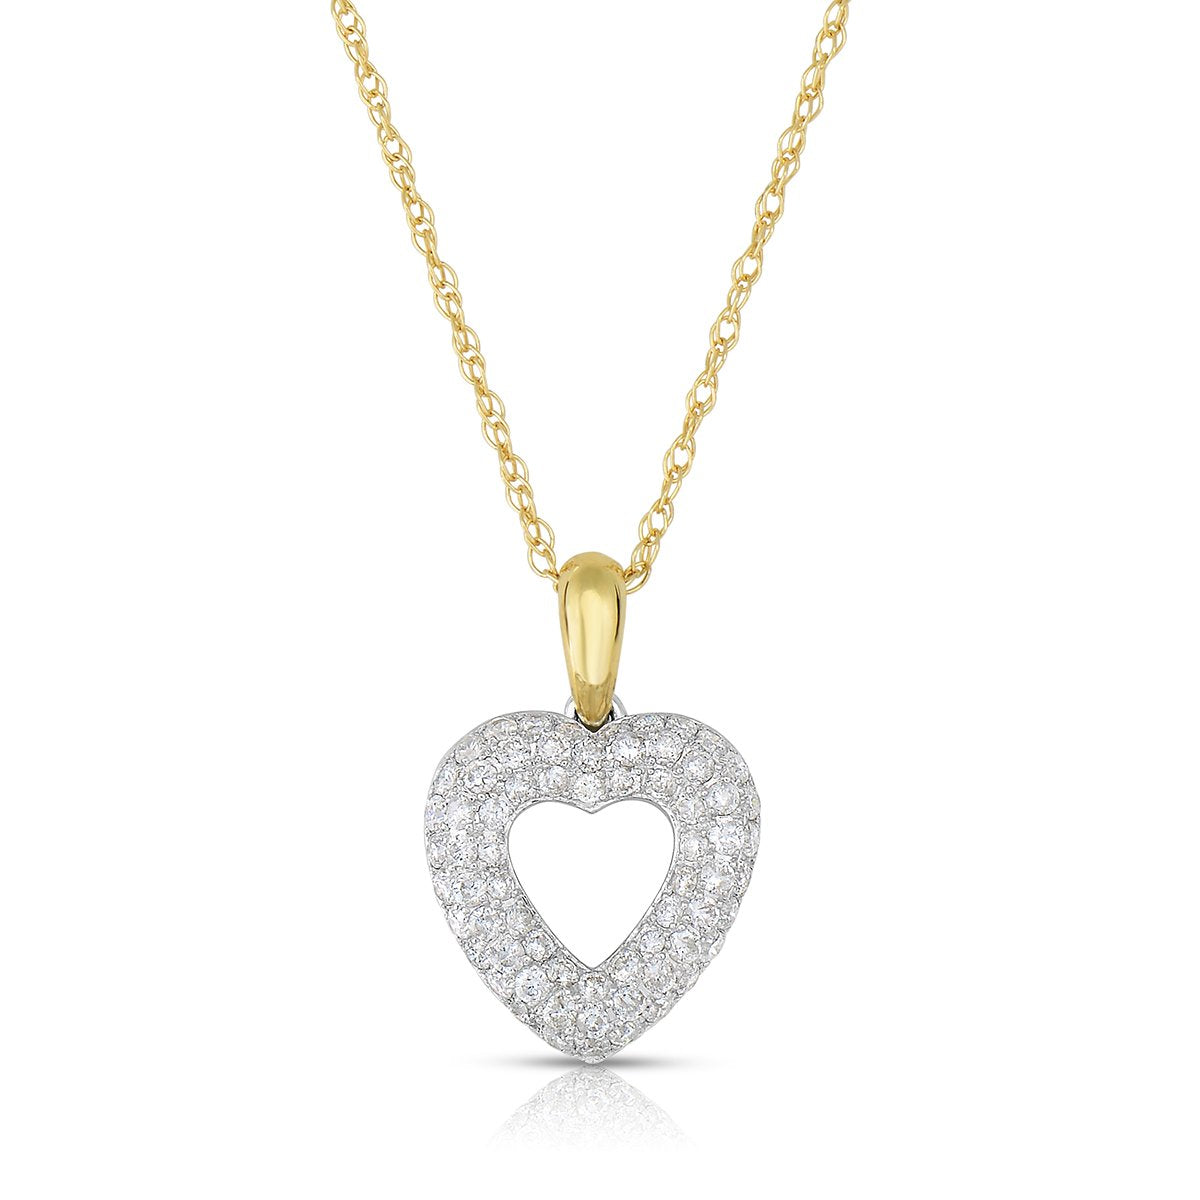 b06d7a9bf9b57 Sabel Collection 14K White and Yellow Gold Diamond Heart Pendant